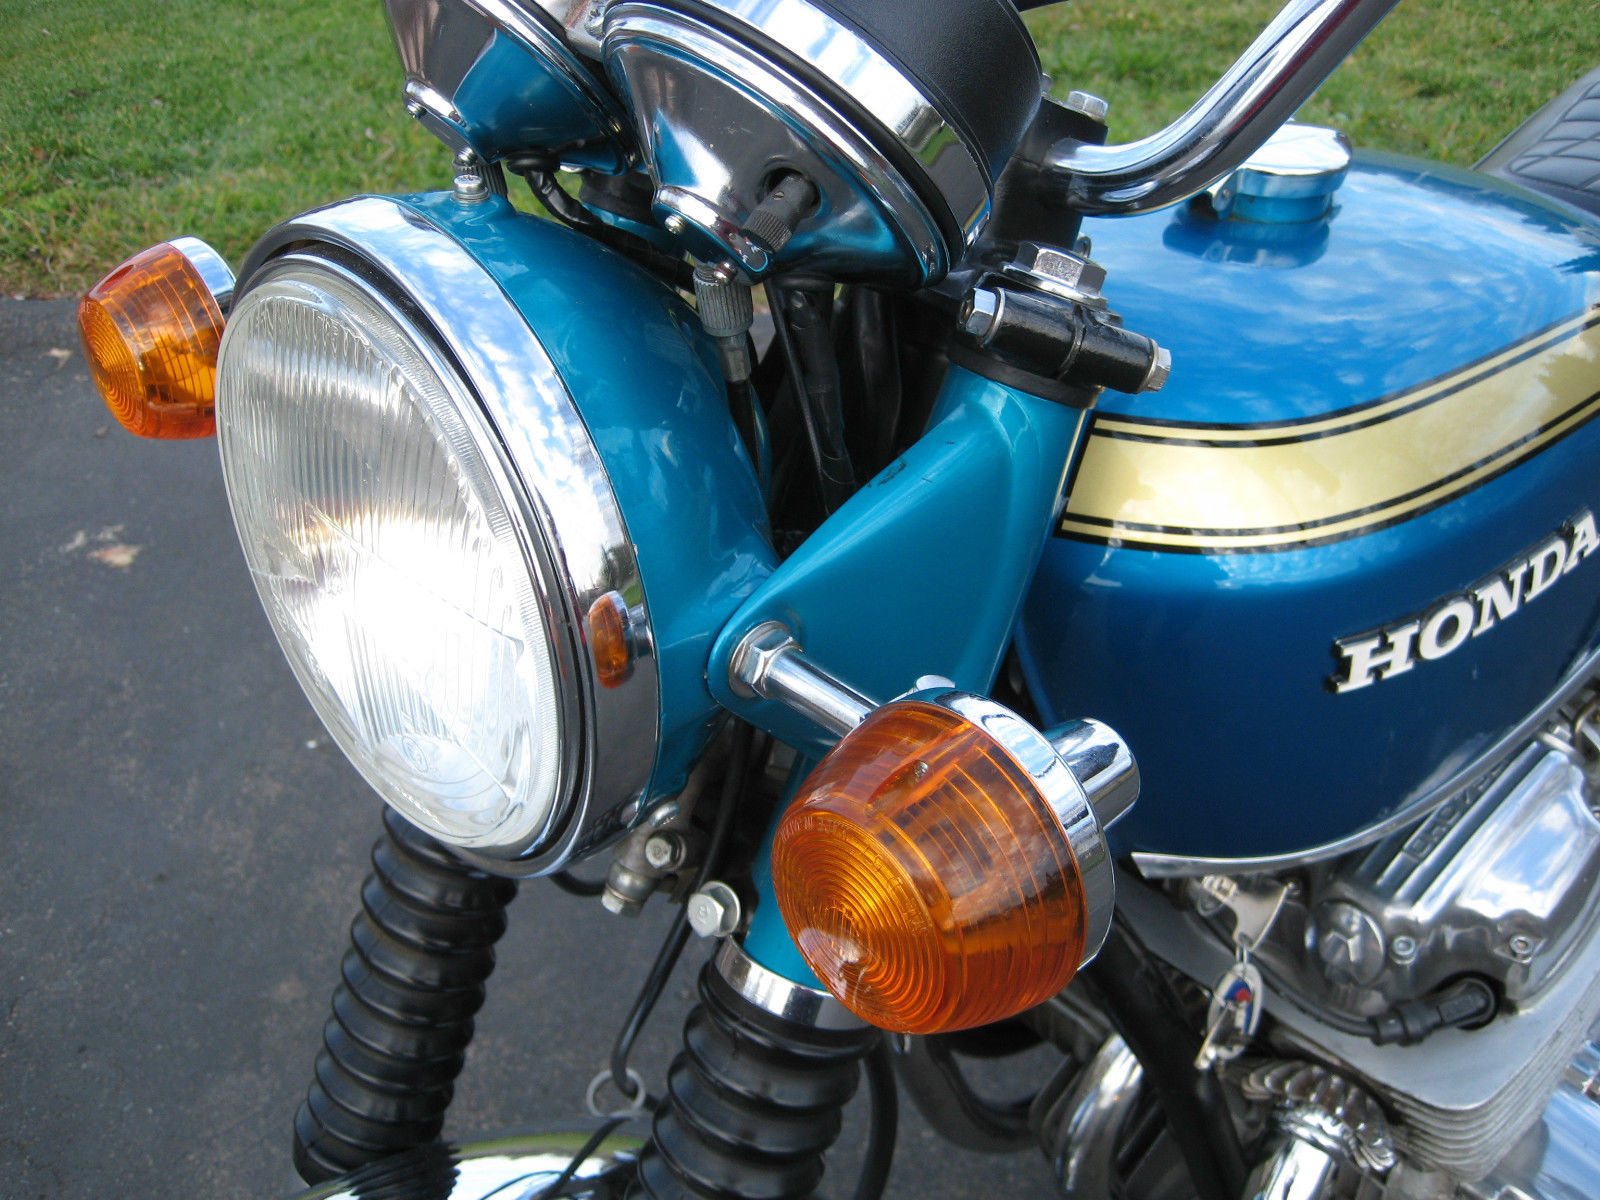 Honda CB750 K0 - 1970 - Headlight, Flashers, Clocks, and Front Forks.